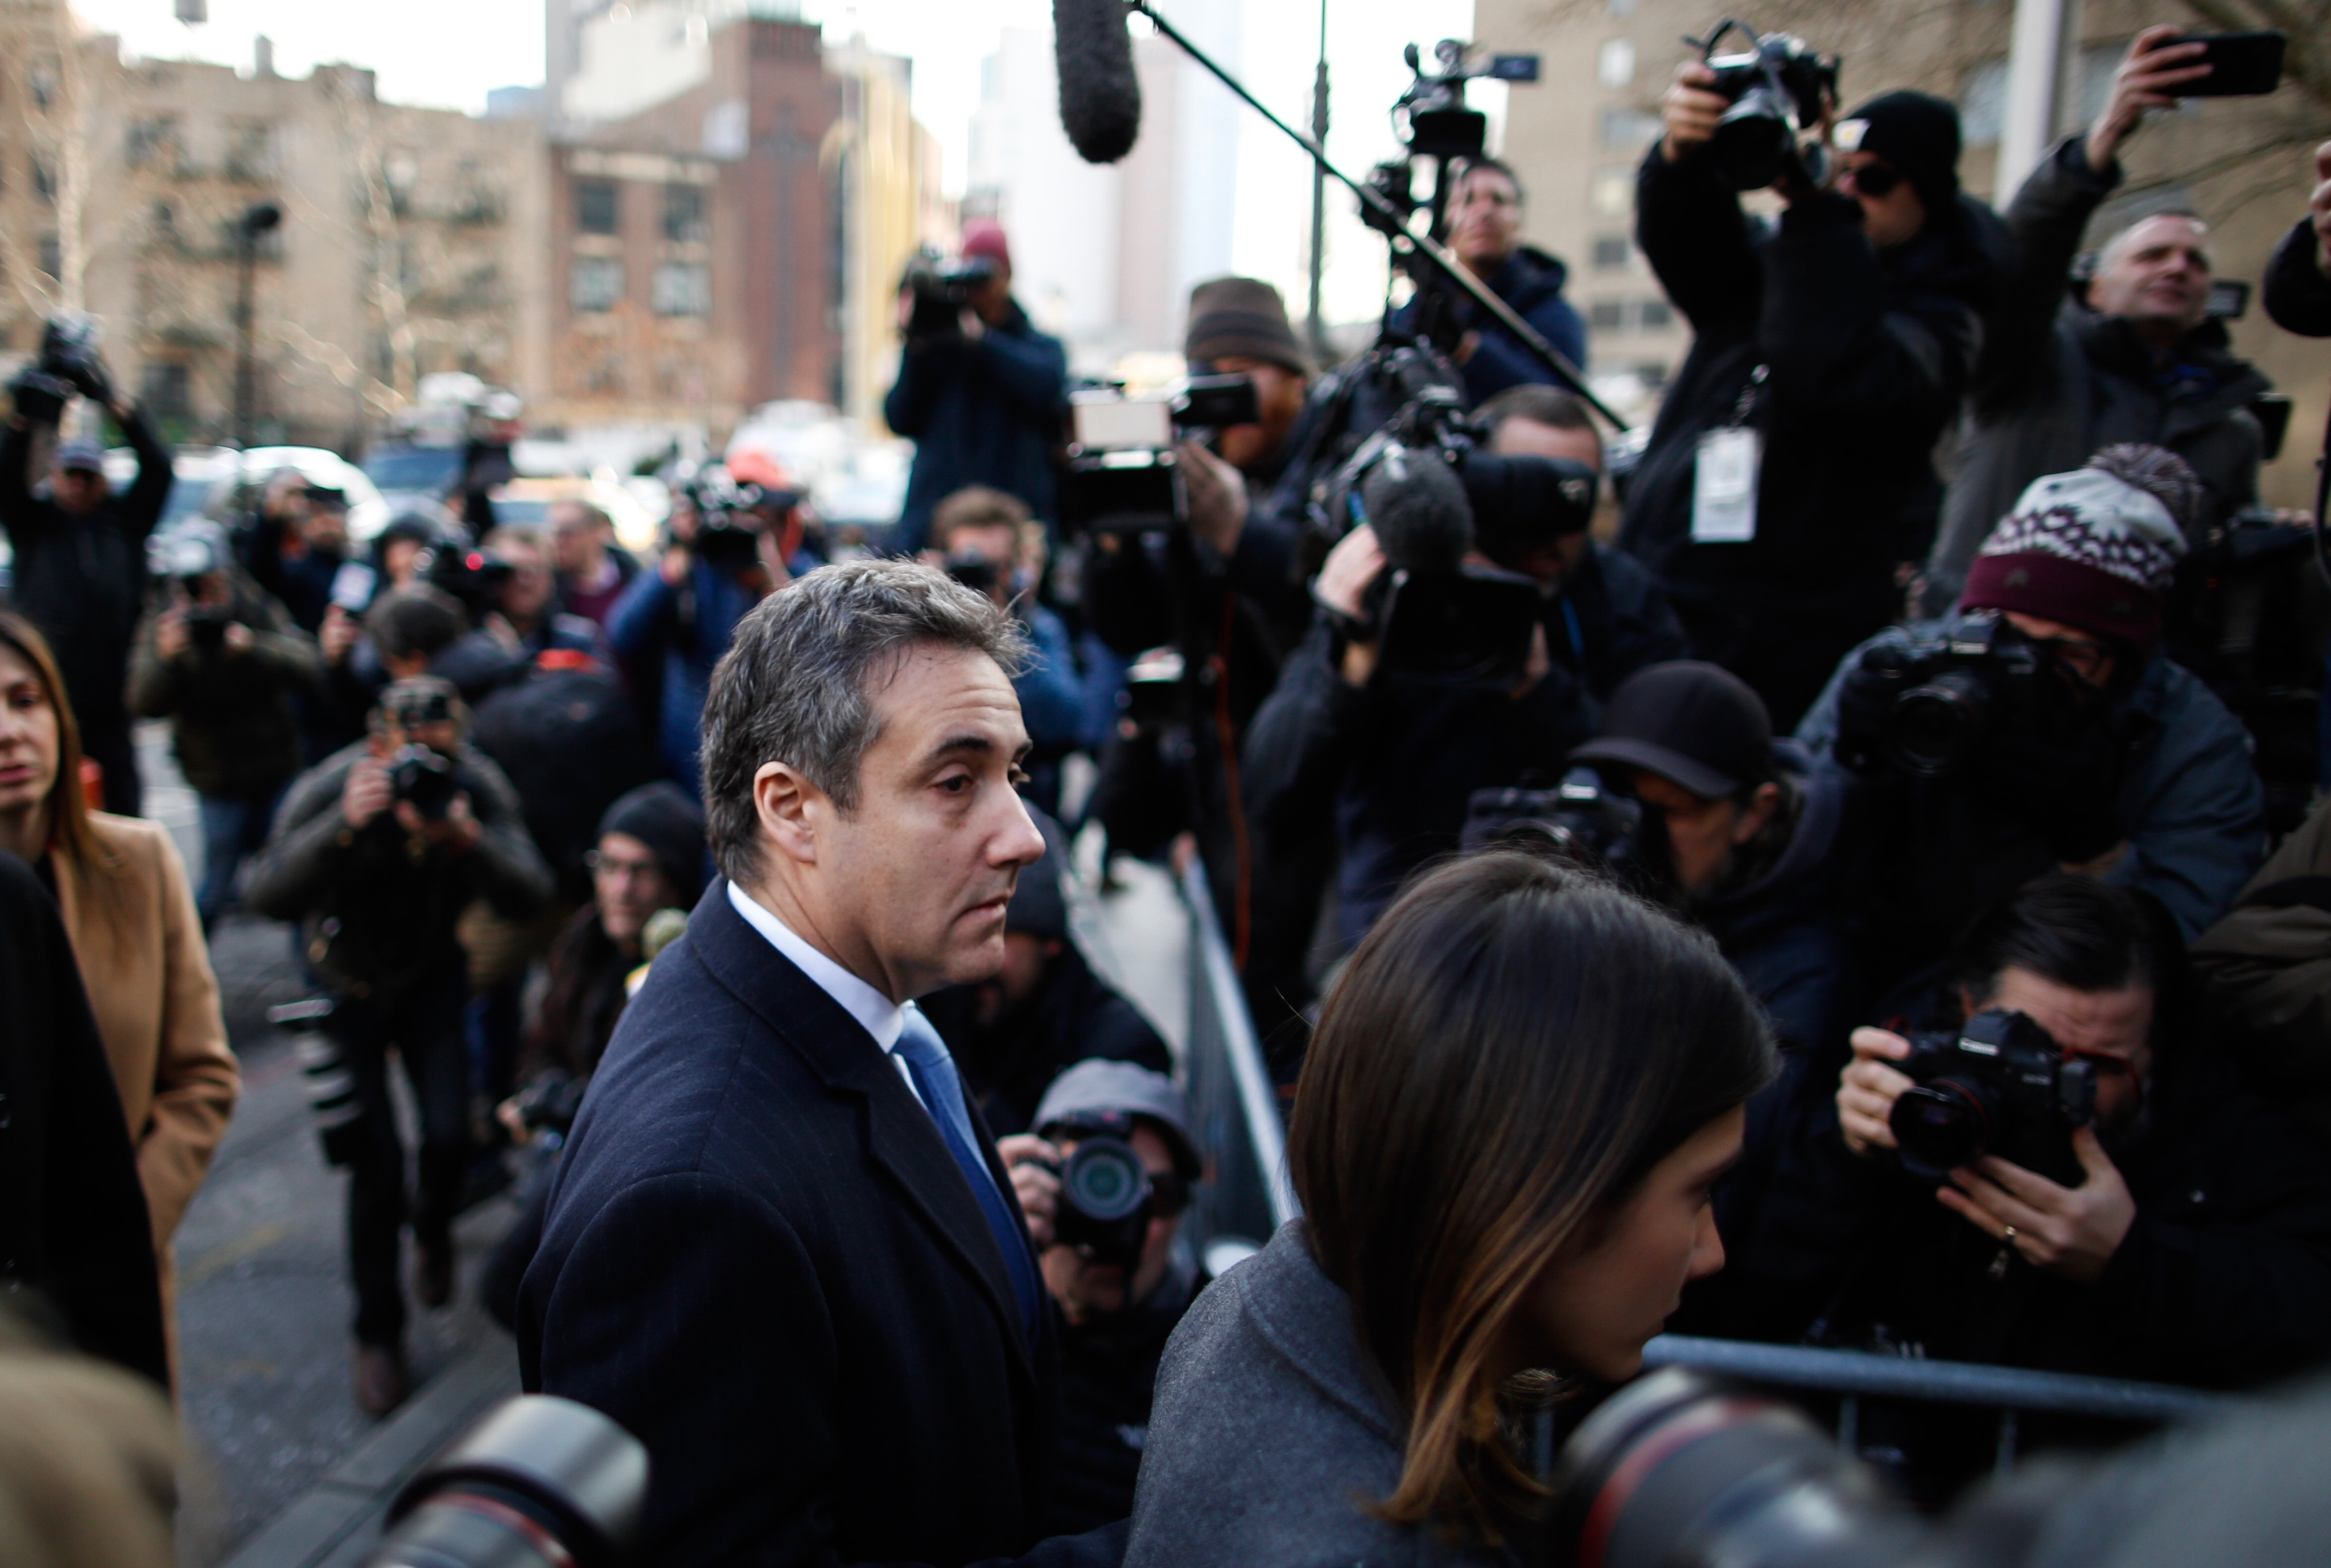 Cohen would refuse a pardon from Trump, his ex-lawyer says